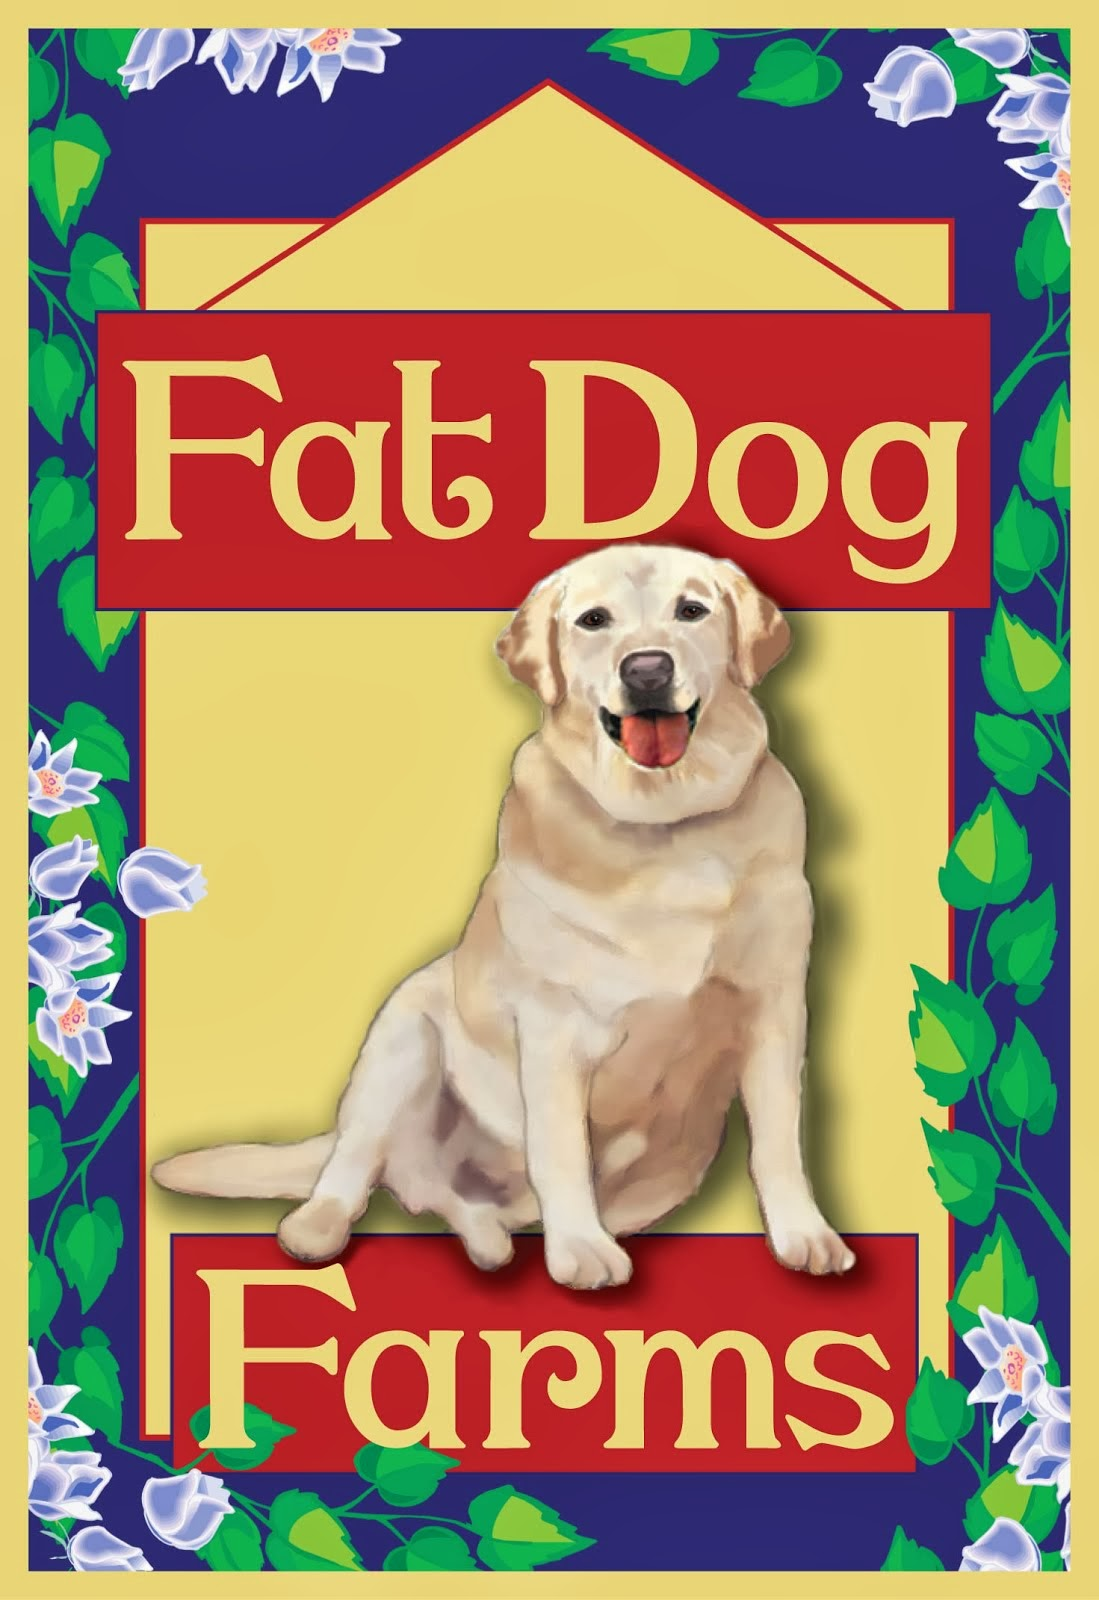 Come see us at the next Fat Dog Farms Annual Sale: May 17, 2014